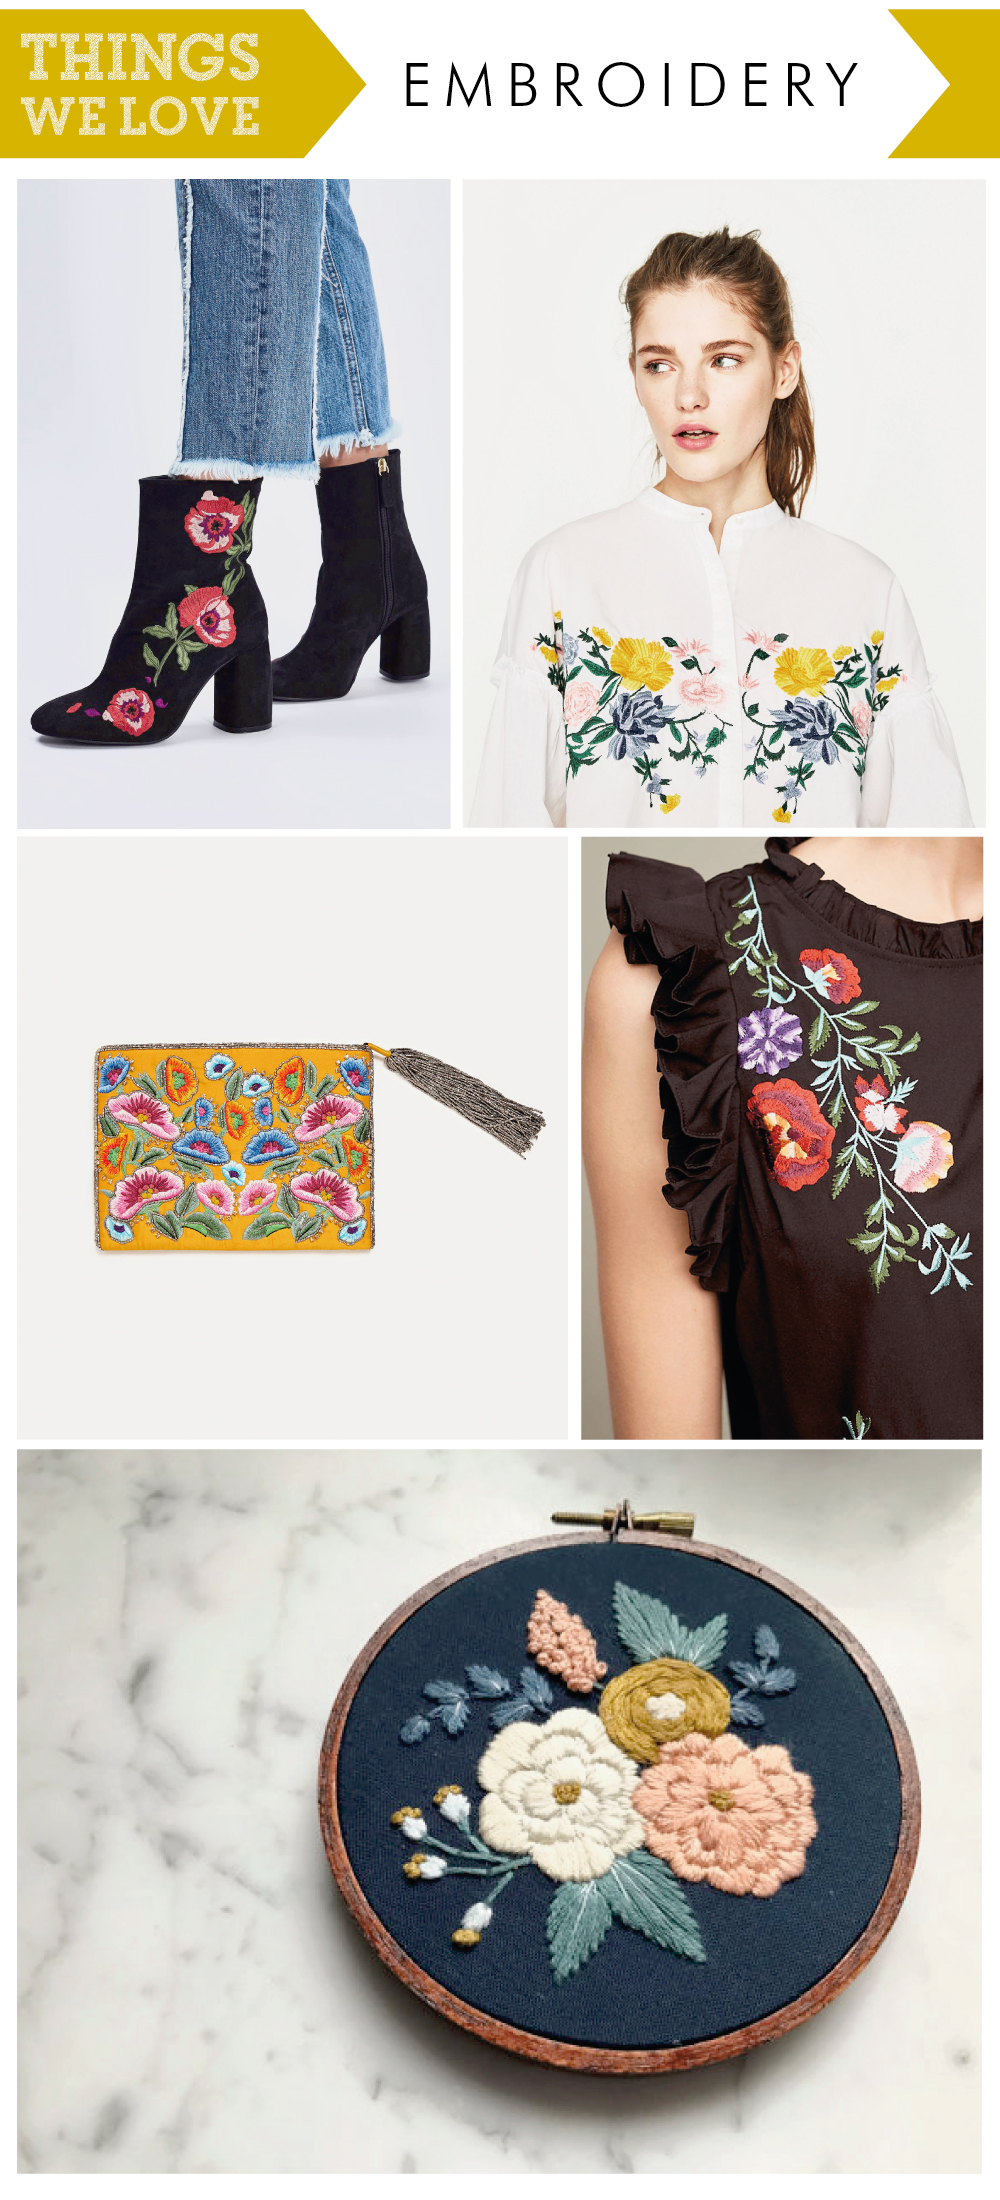 image credits- Topshop, Zara, Anthropologie, www.etsy.com/uk/listing/500537005/embroidery-hoop-art-embroidery-hand